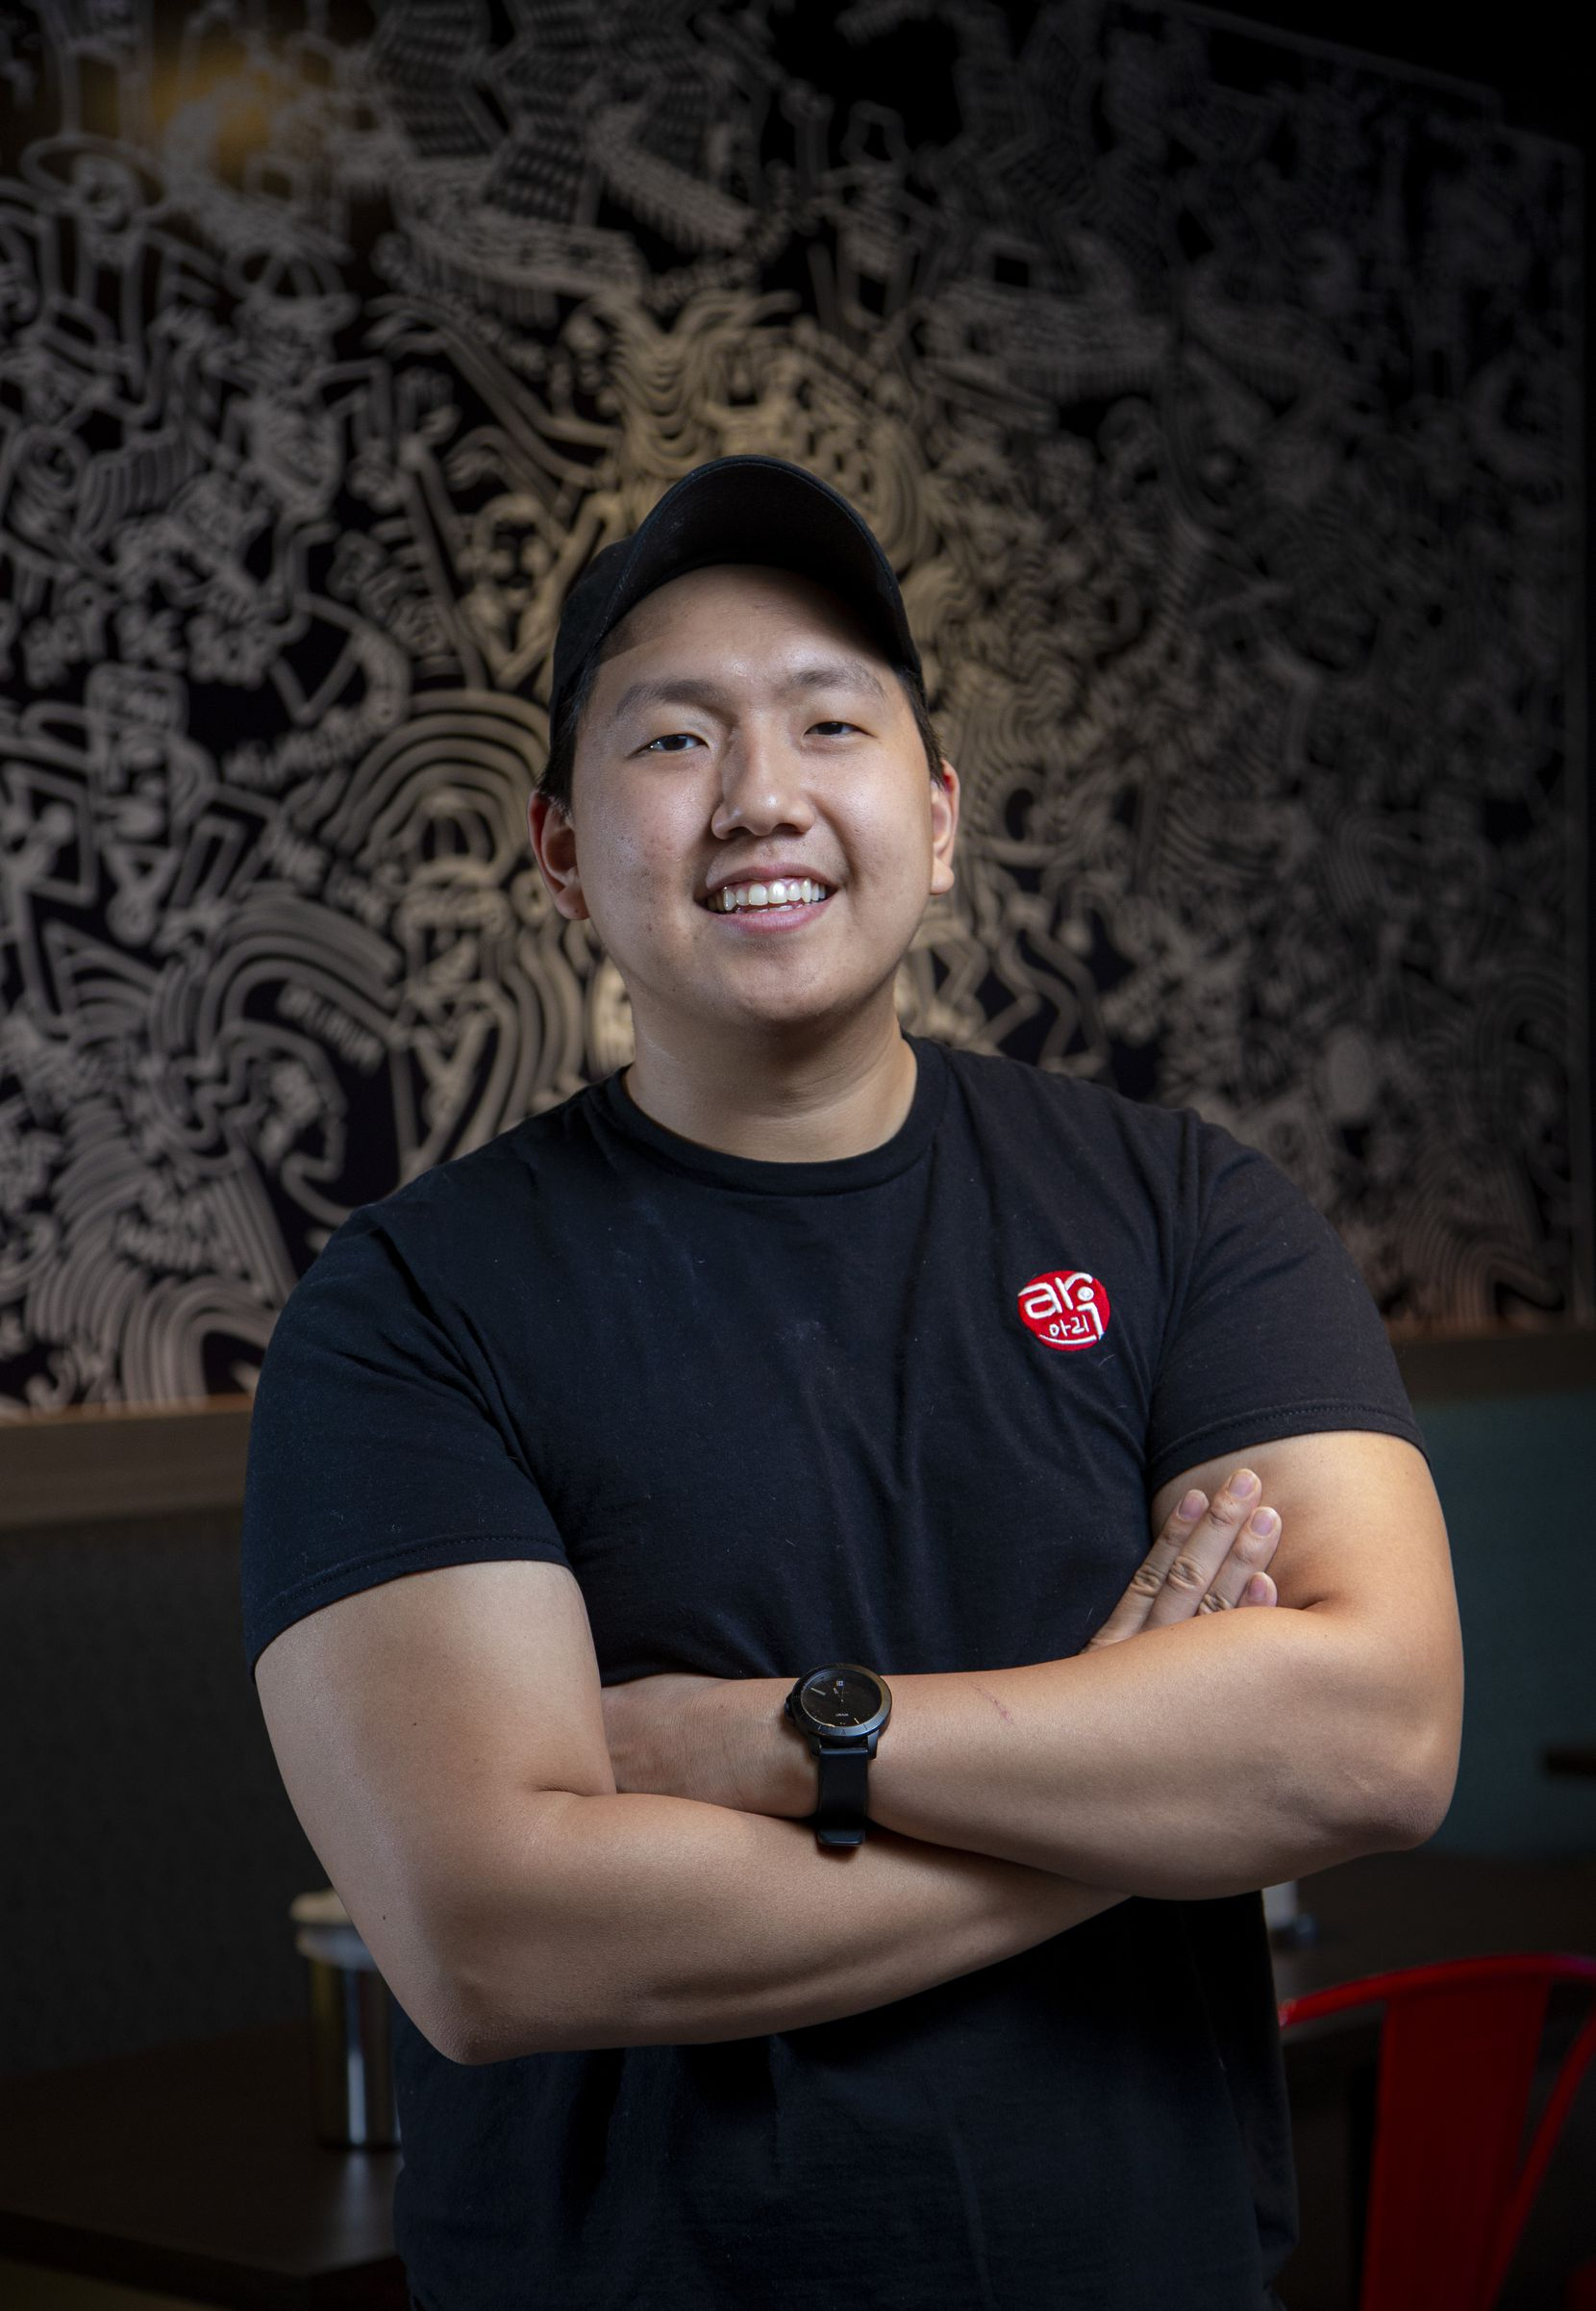 David Park co-owns Ari Chicken with his brother and mother.